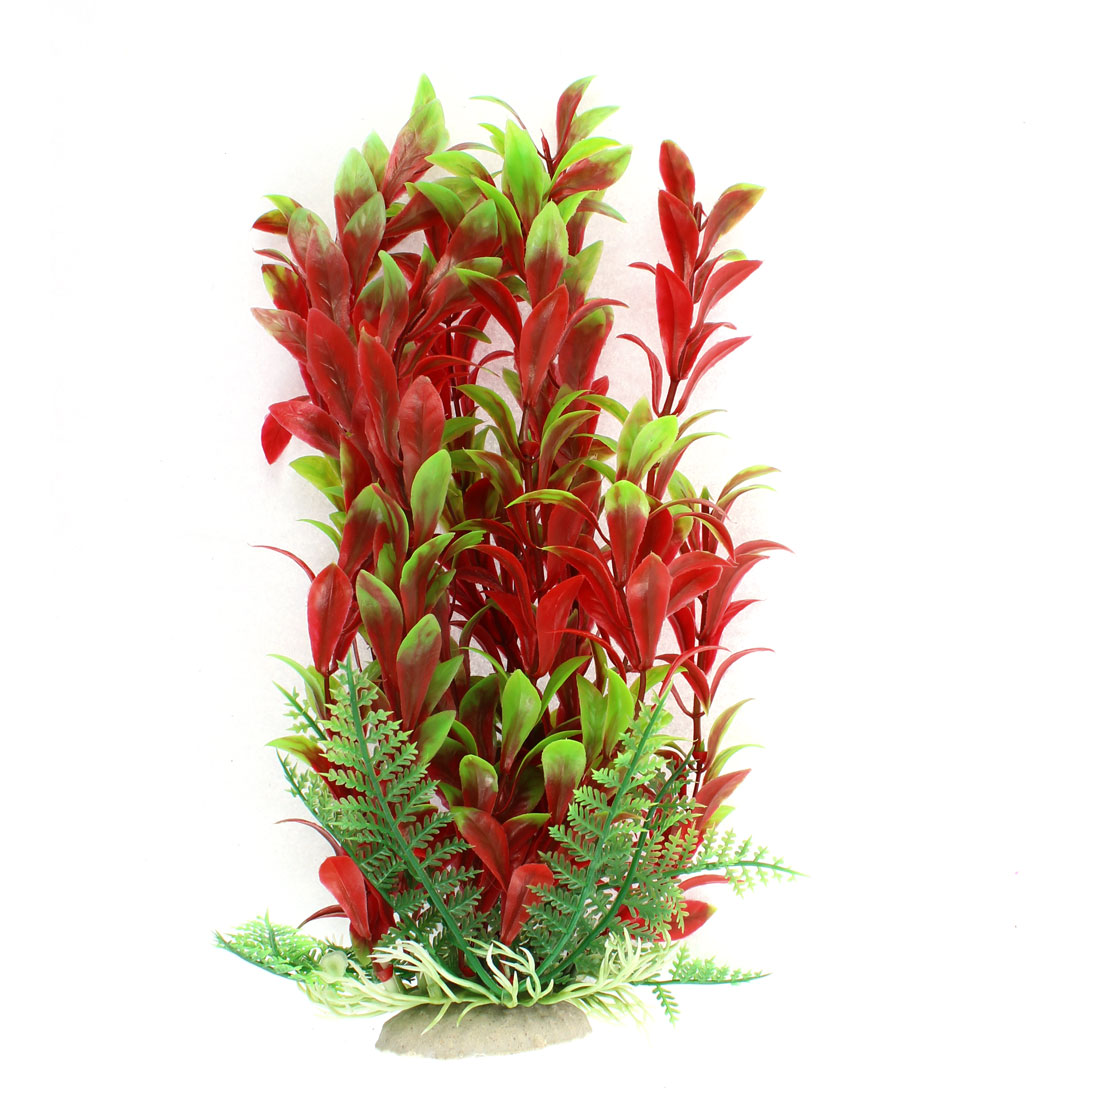 "Aquarium Plastic Manmade Aquatic Plant Decor 9"" Height"